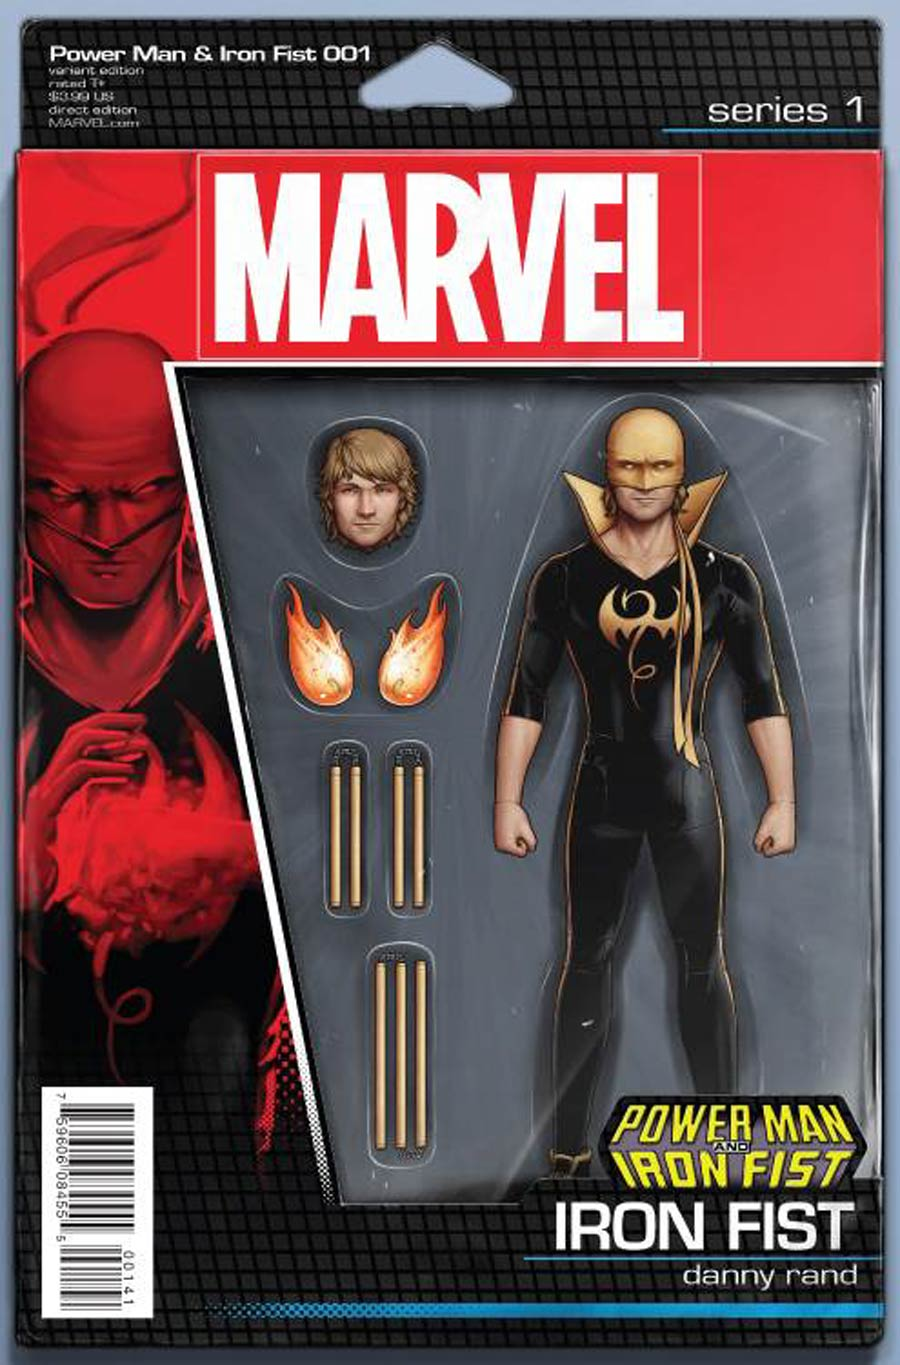 Power Man And Iron Fist Vol 3 #1 Cover D Variant John Tyler Christopher Iron Fist Action Figure Cover